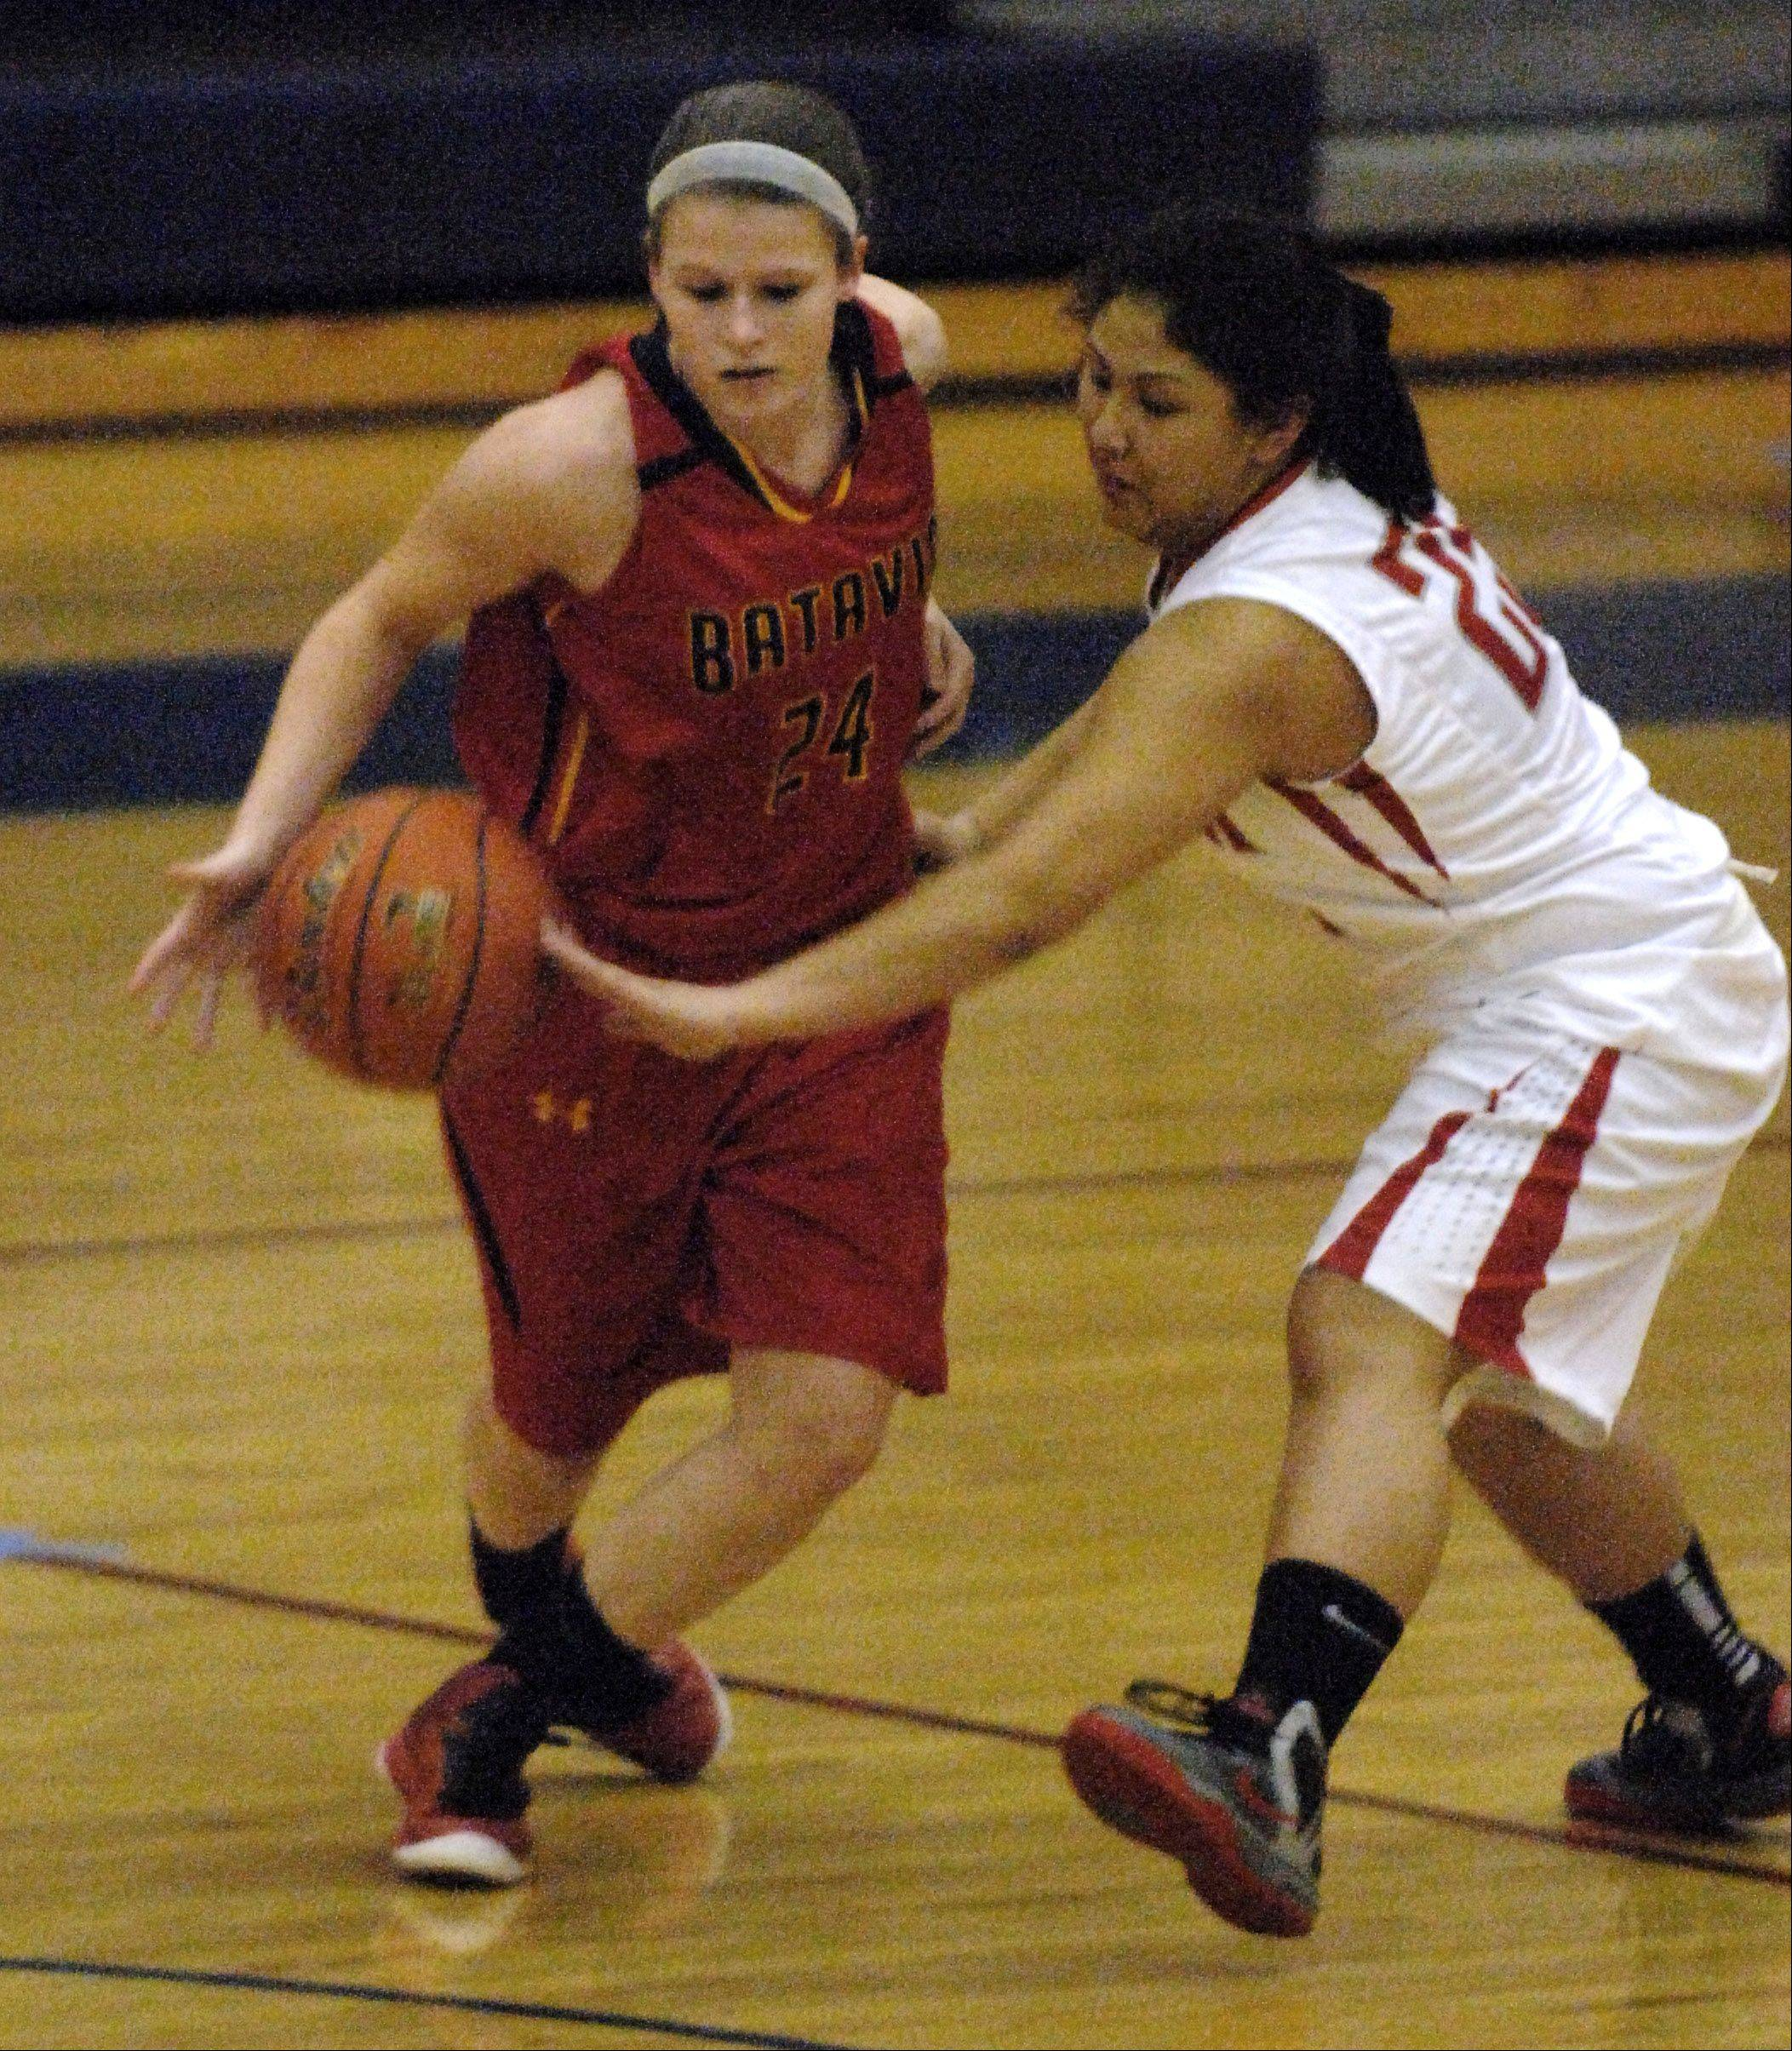 Batavia's Jenny Welday is pressured by South Elgin's Nadia Yang.